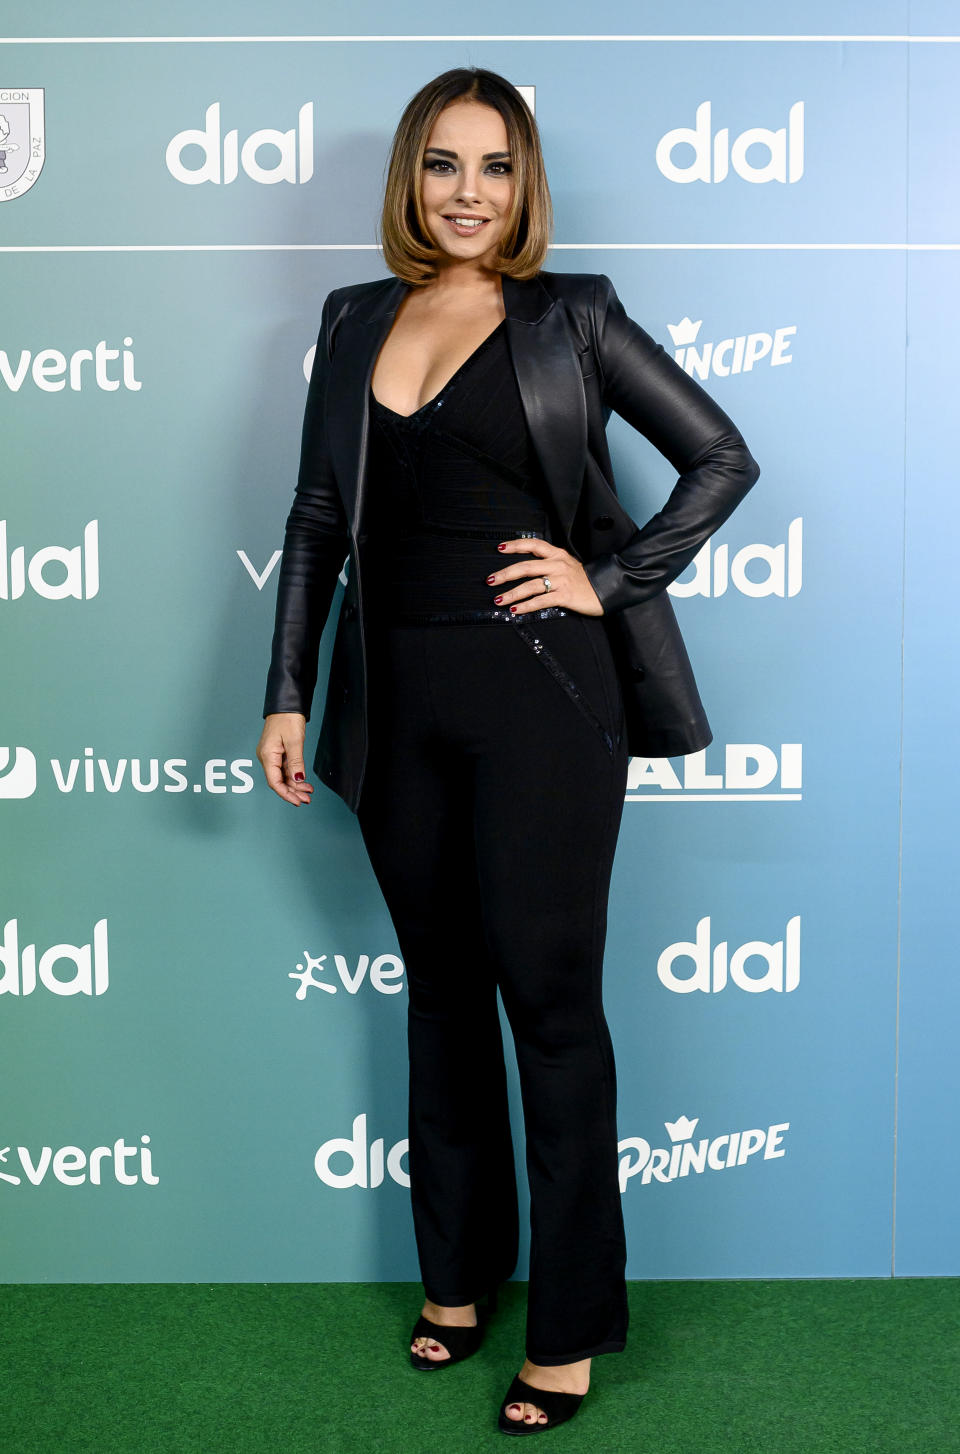 MADRID, SPAIN - SEPTEMBER 06: Chenoa attends during 'Vive Dial' Madrid photocall 2019 on September 06, 2019 in Madrid, Spain. (Photo by Samuel de Roman/Getty Images)